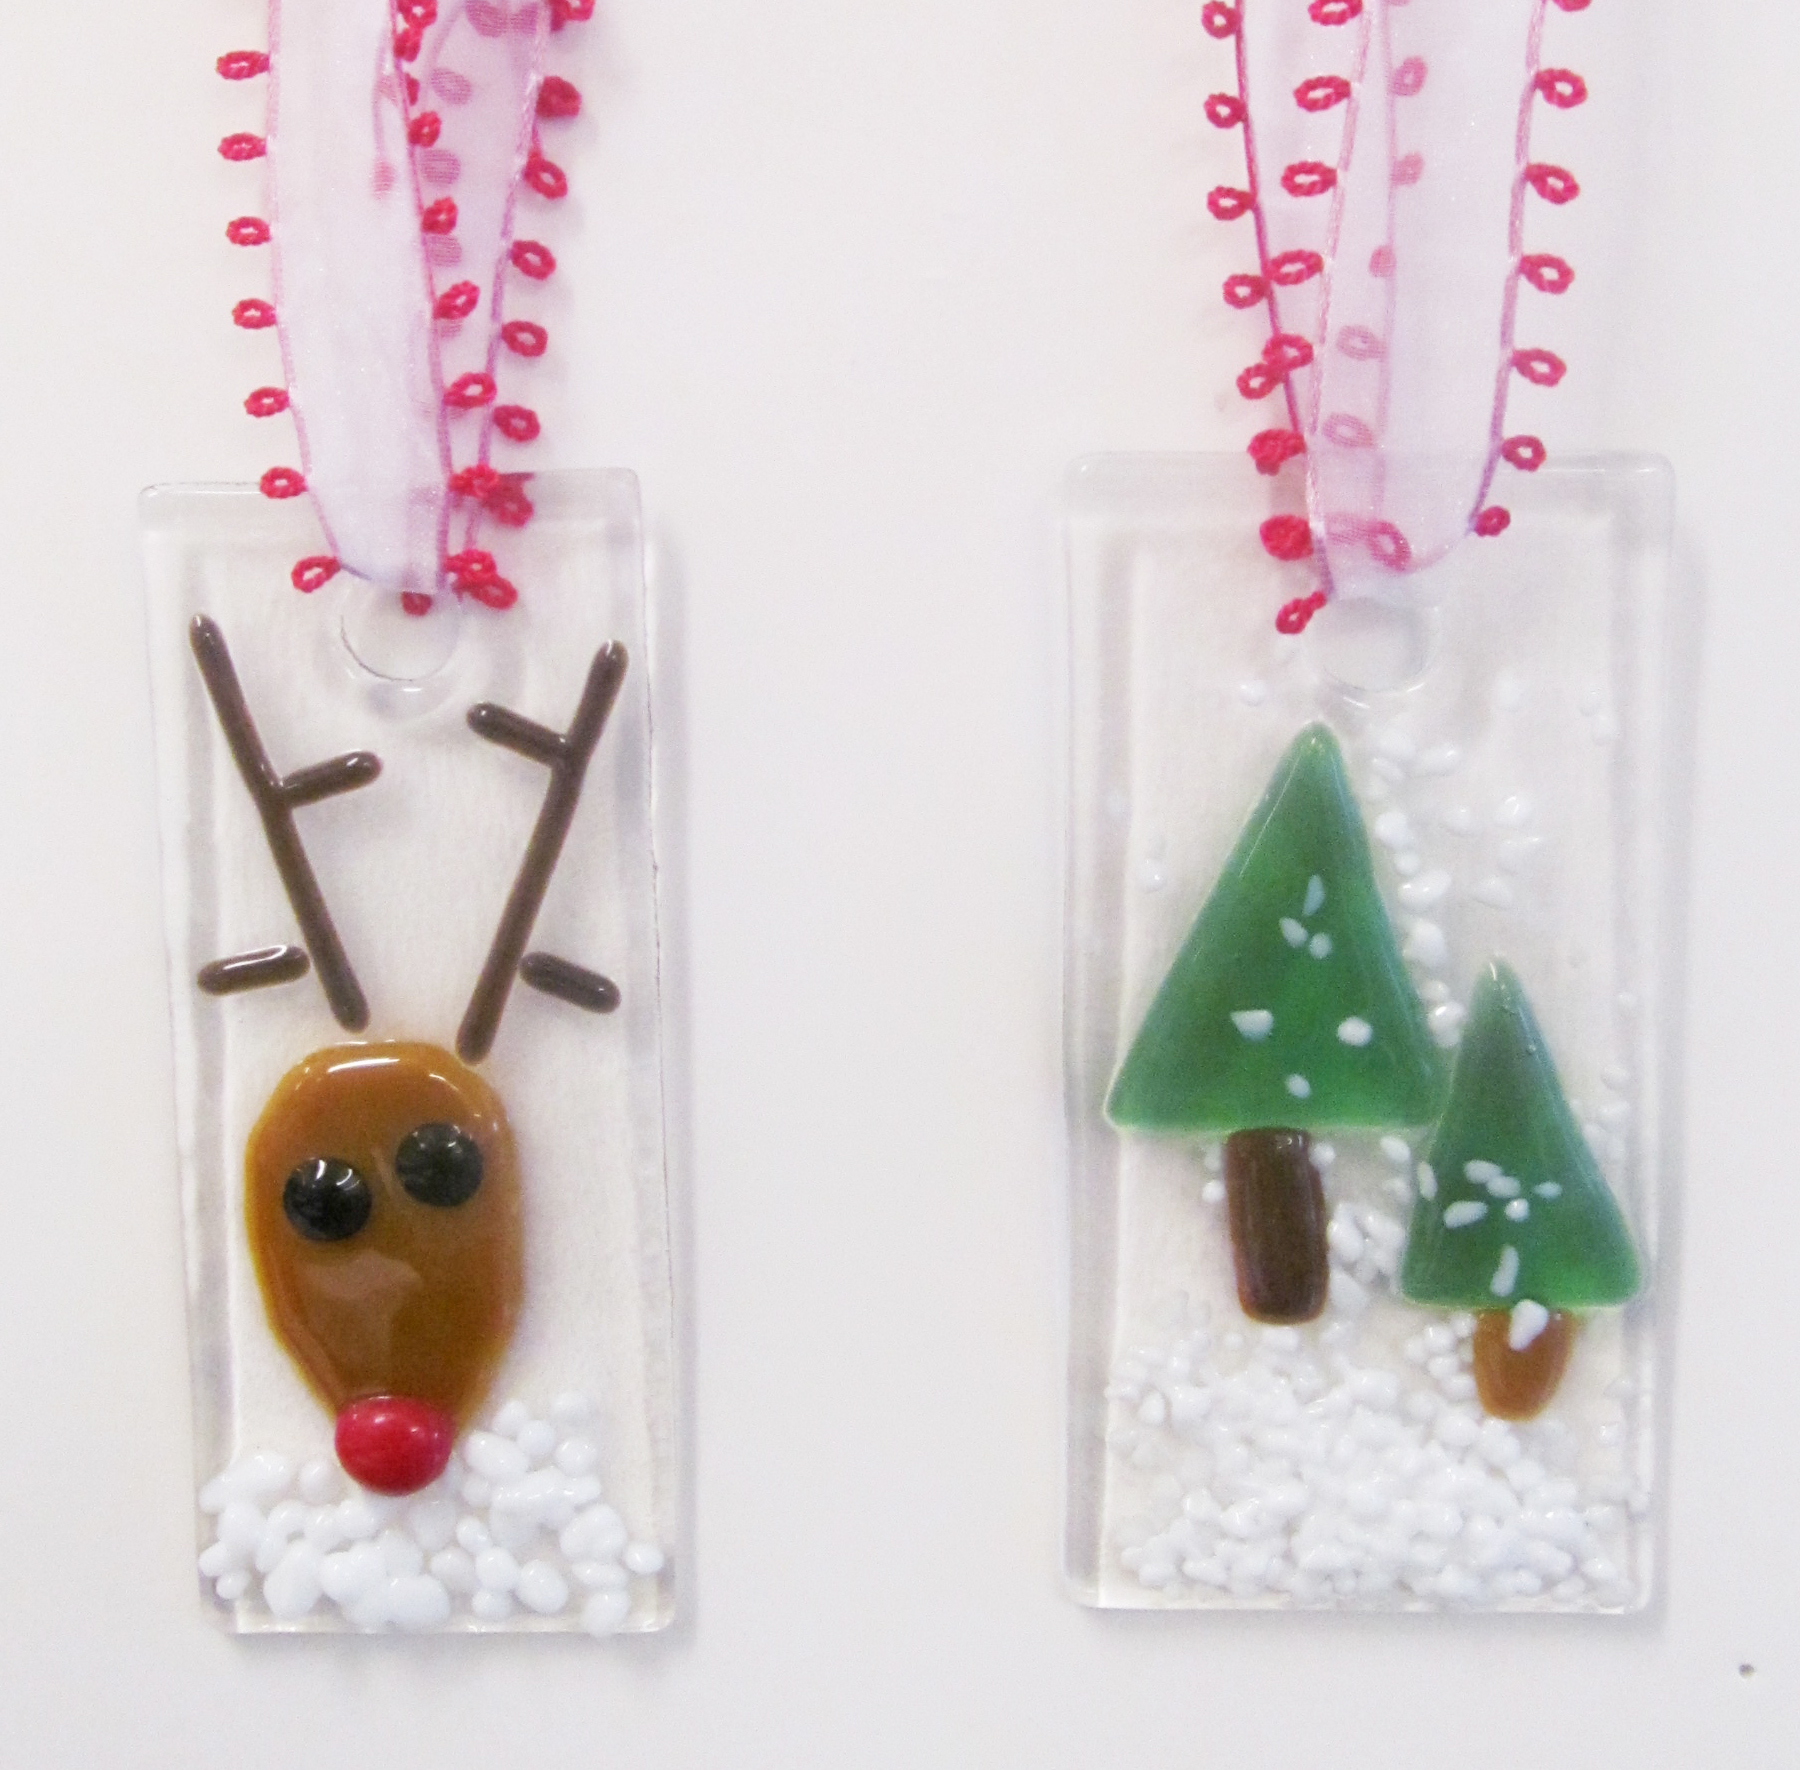 Fused glass holiday ornaments visarts